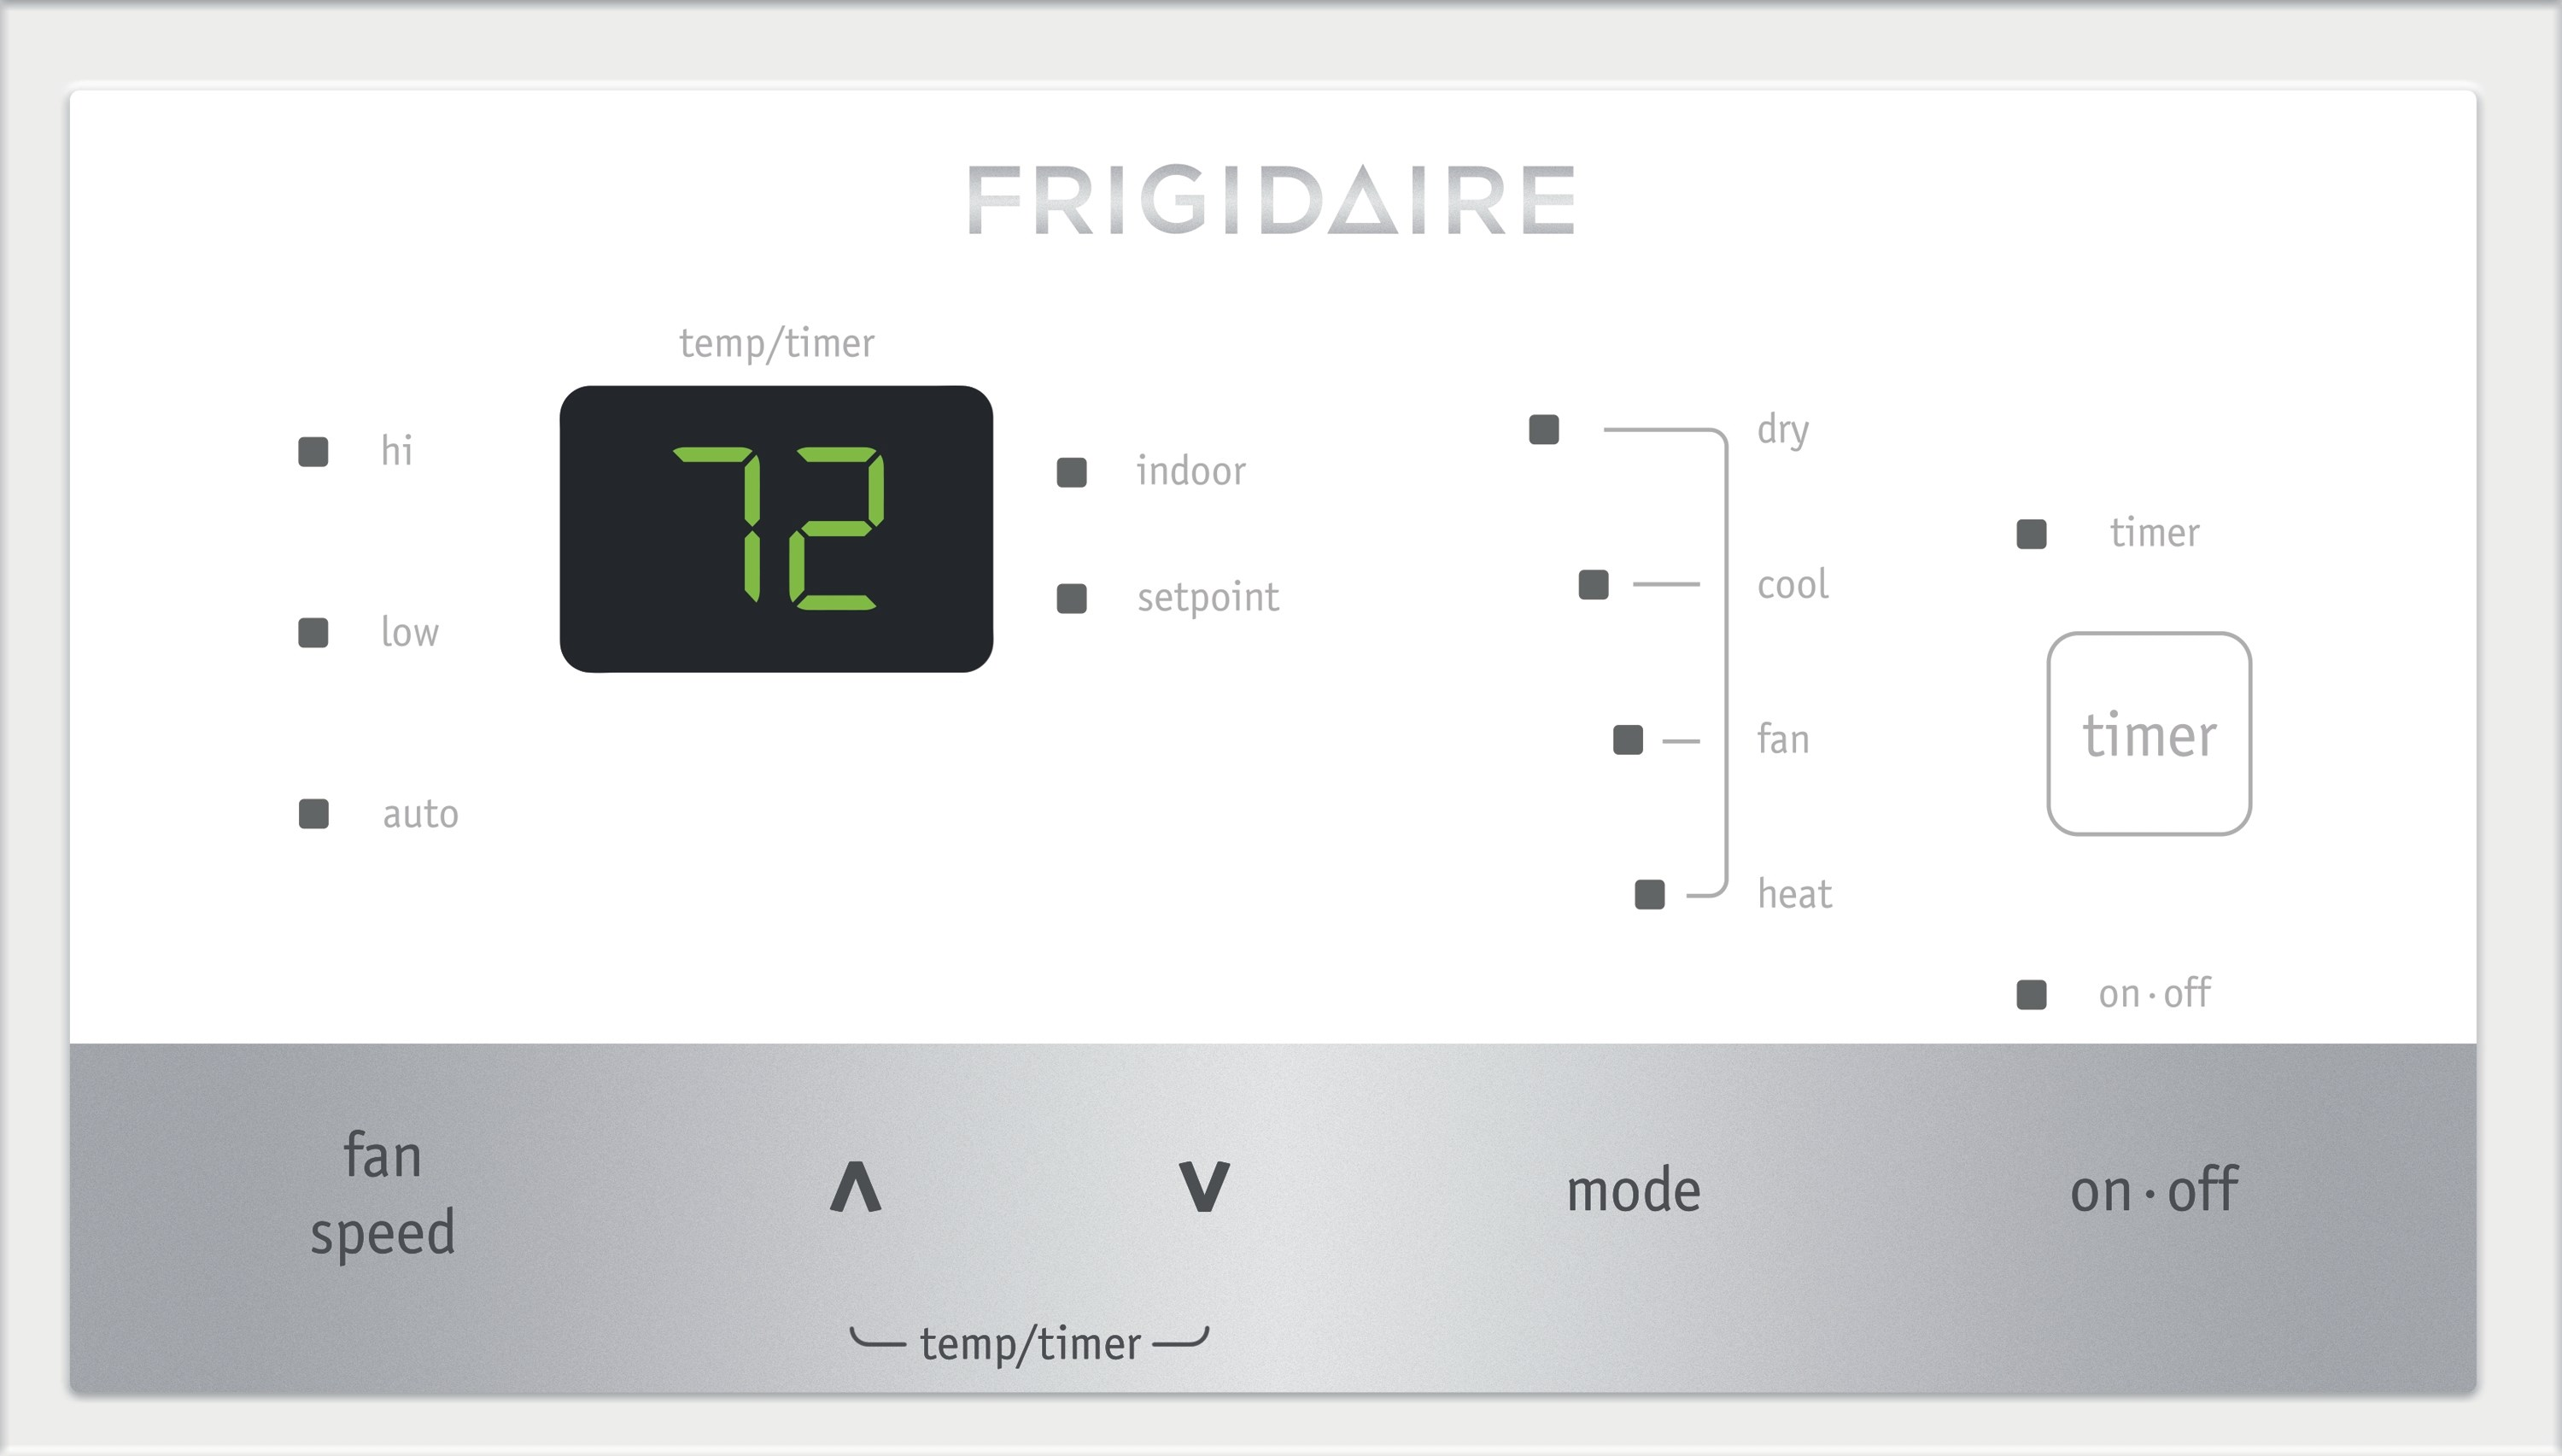 Frigidaire Ffrp152lt4 Ptac Unit With Electric Heat 15000 Btu Wiring Diagram 208 230v Corrosion Guard And Dry Mode